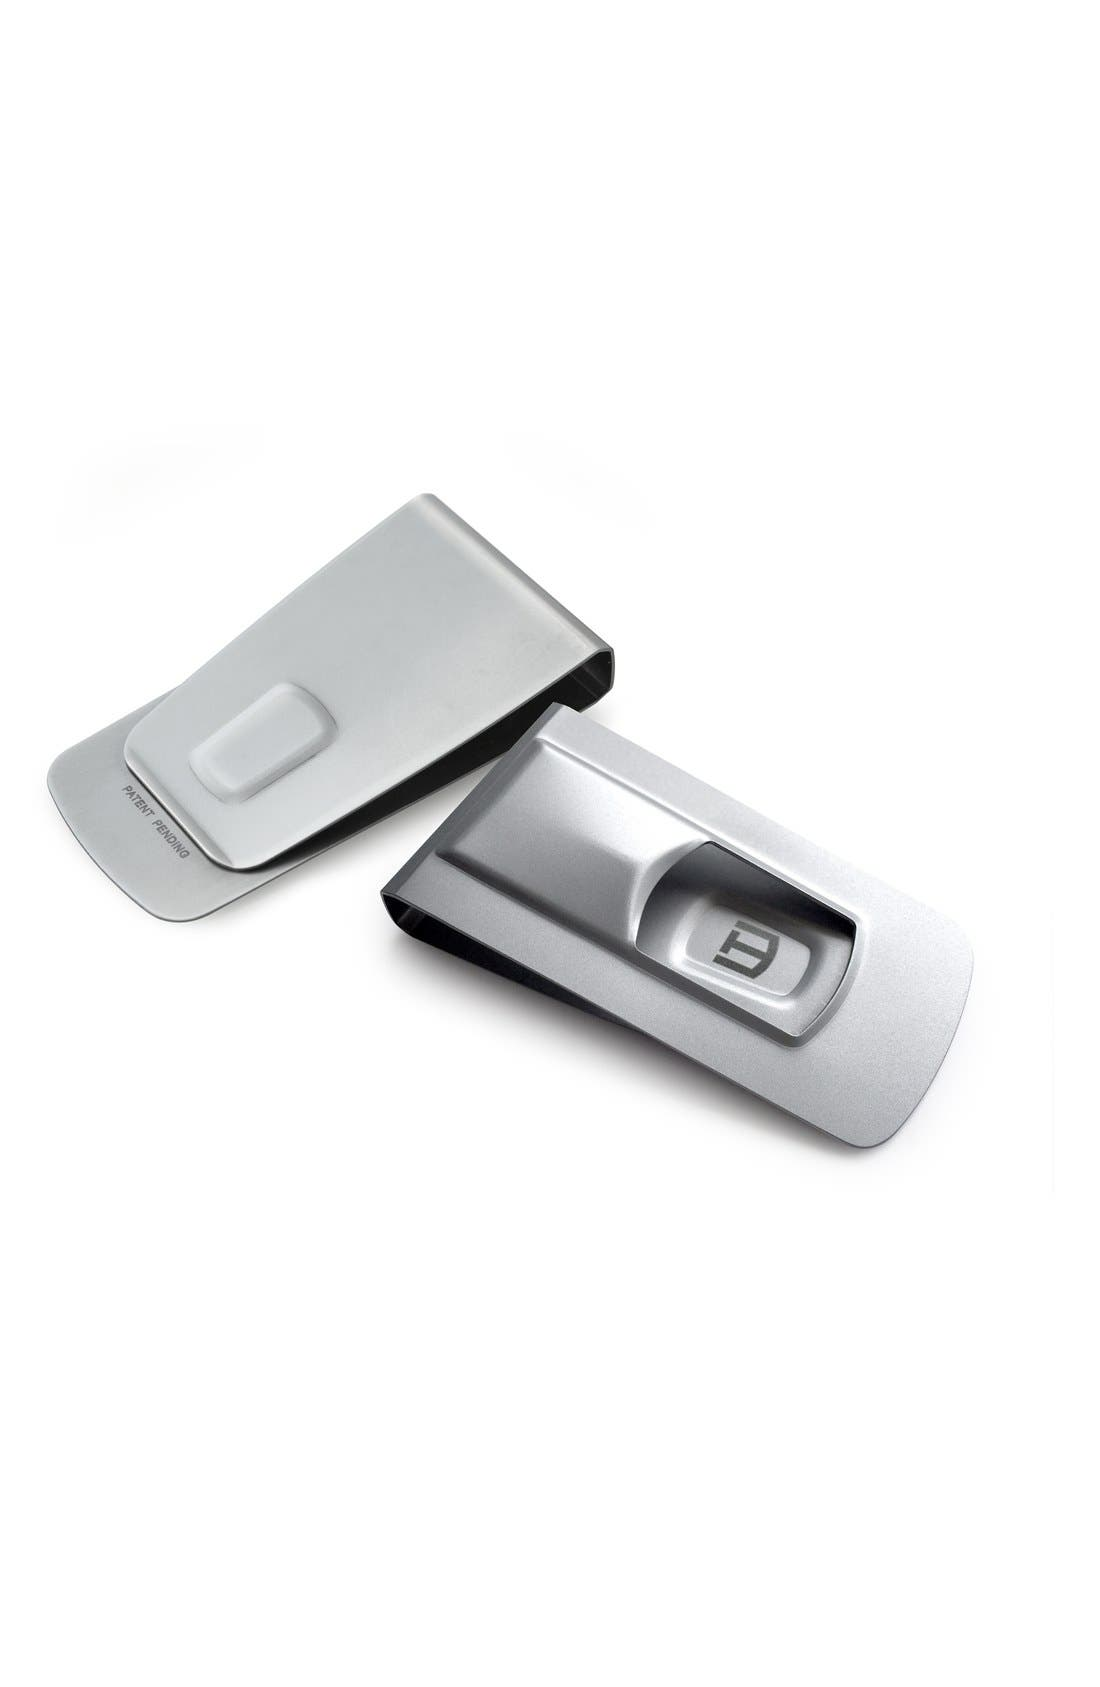 M-Clip® 'Tightwad' Money Clip